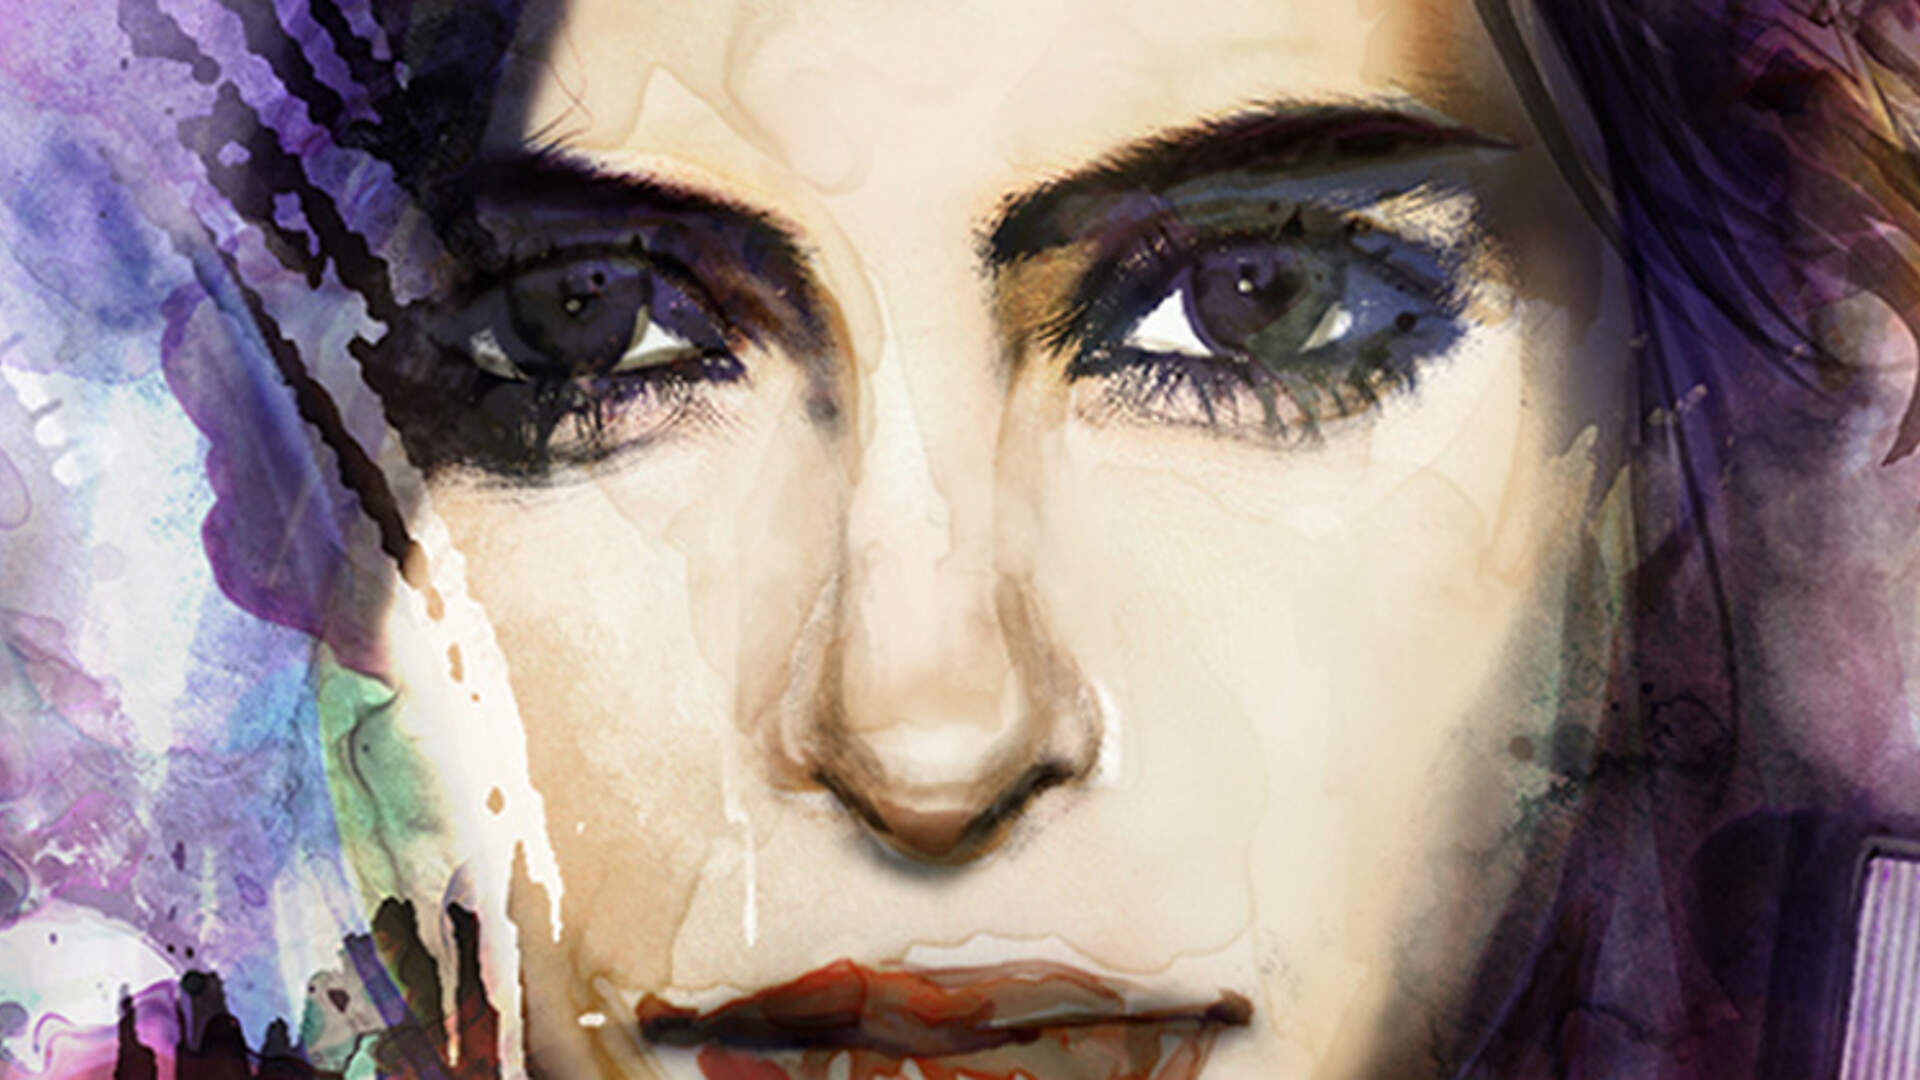 Who is Marvel's Jessica Jones?